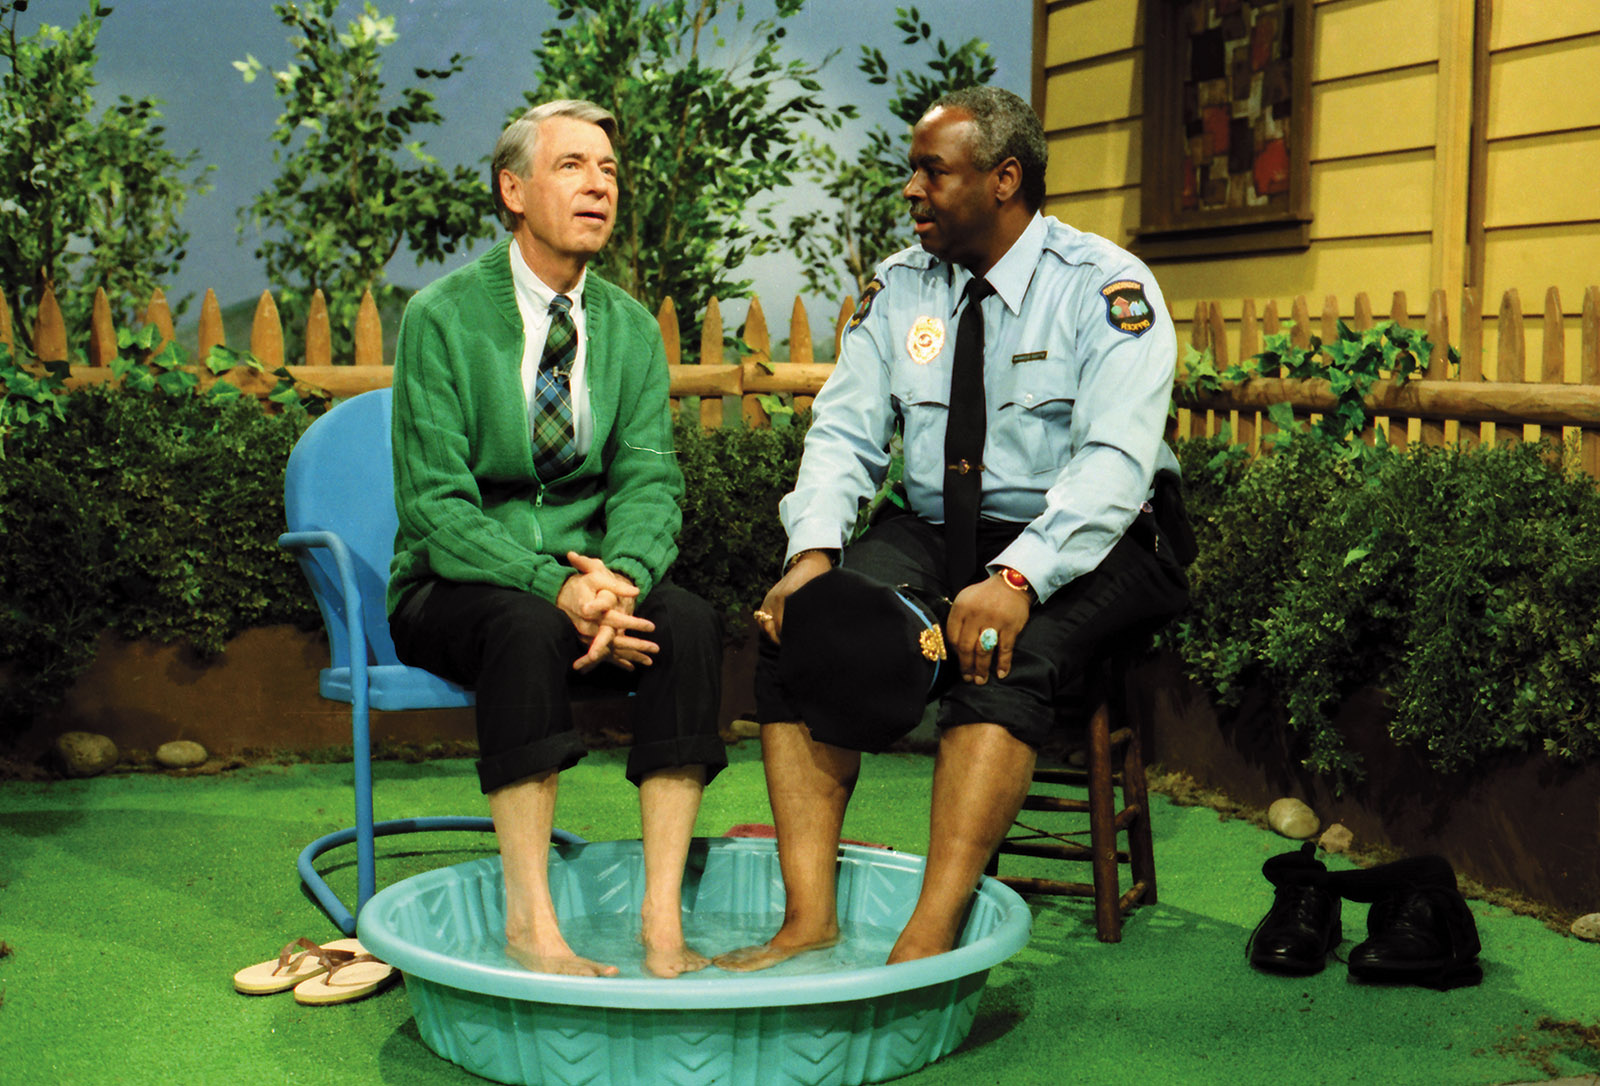 Mr. Rogers at the set of Mister Rogers' Neighborhood with Officer Clemmons (François Clemmons)